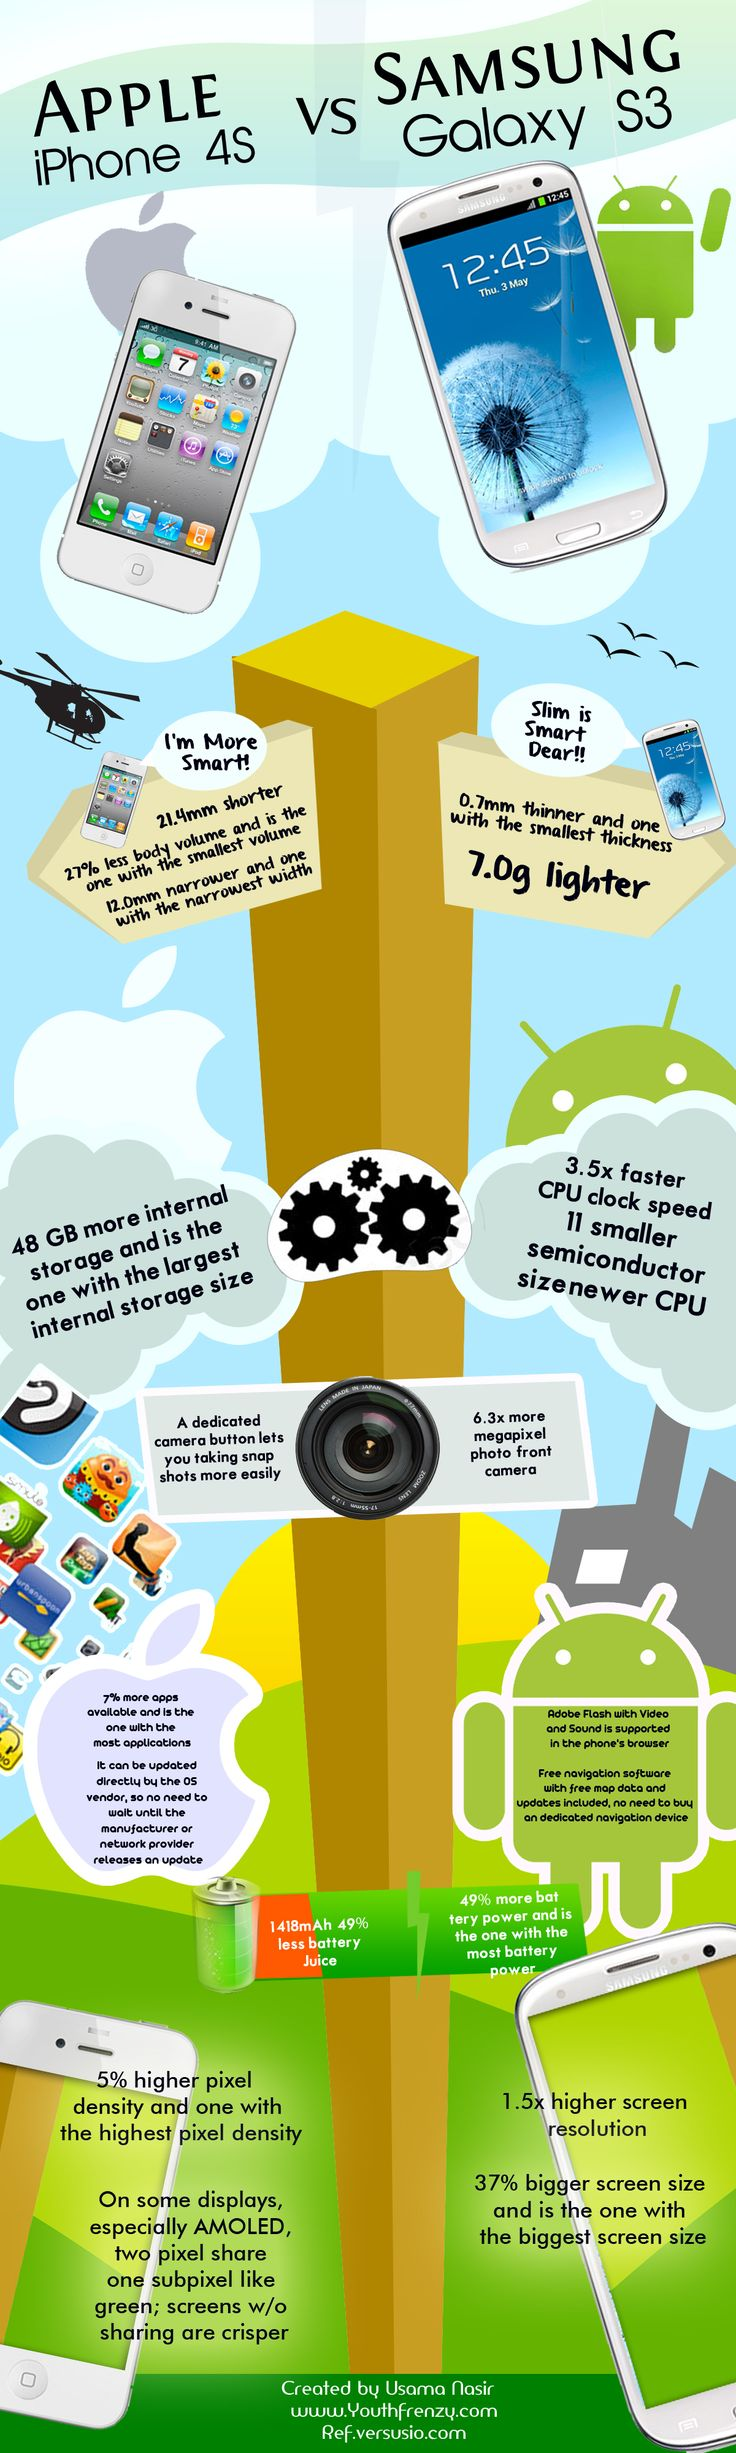 29 best images about Infographic Mobile on Pinterest ...